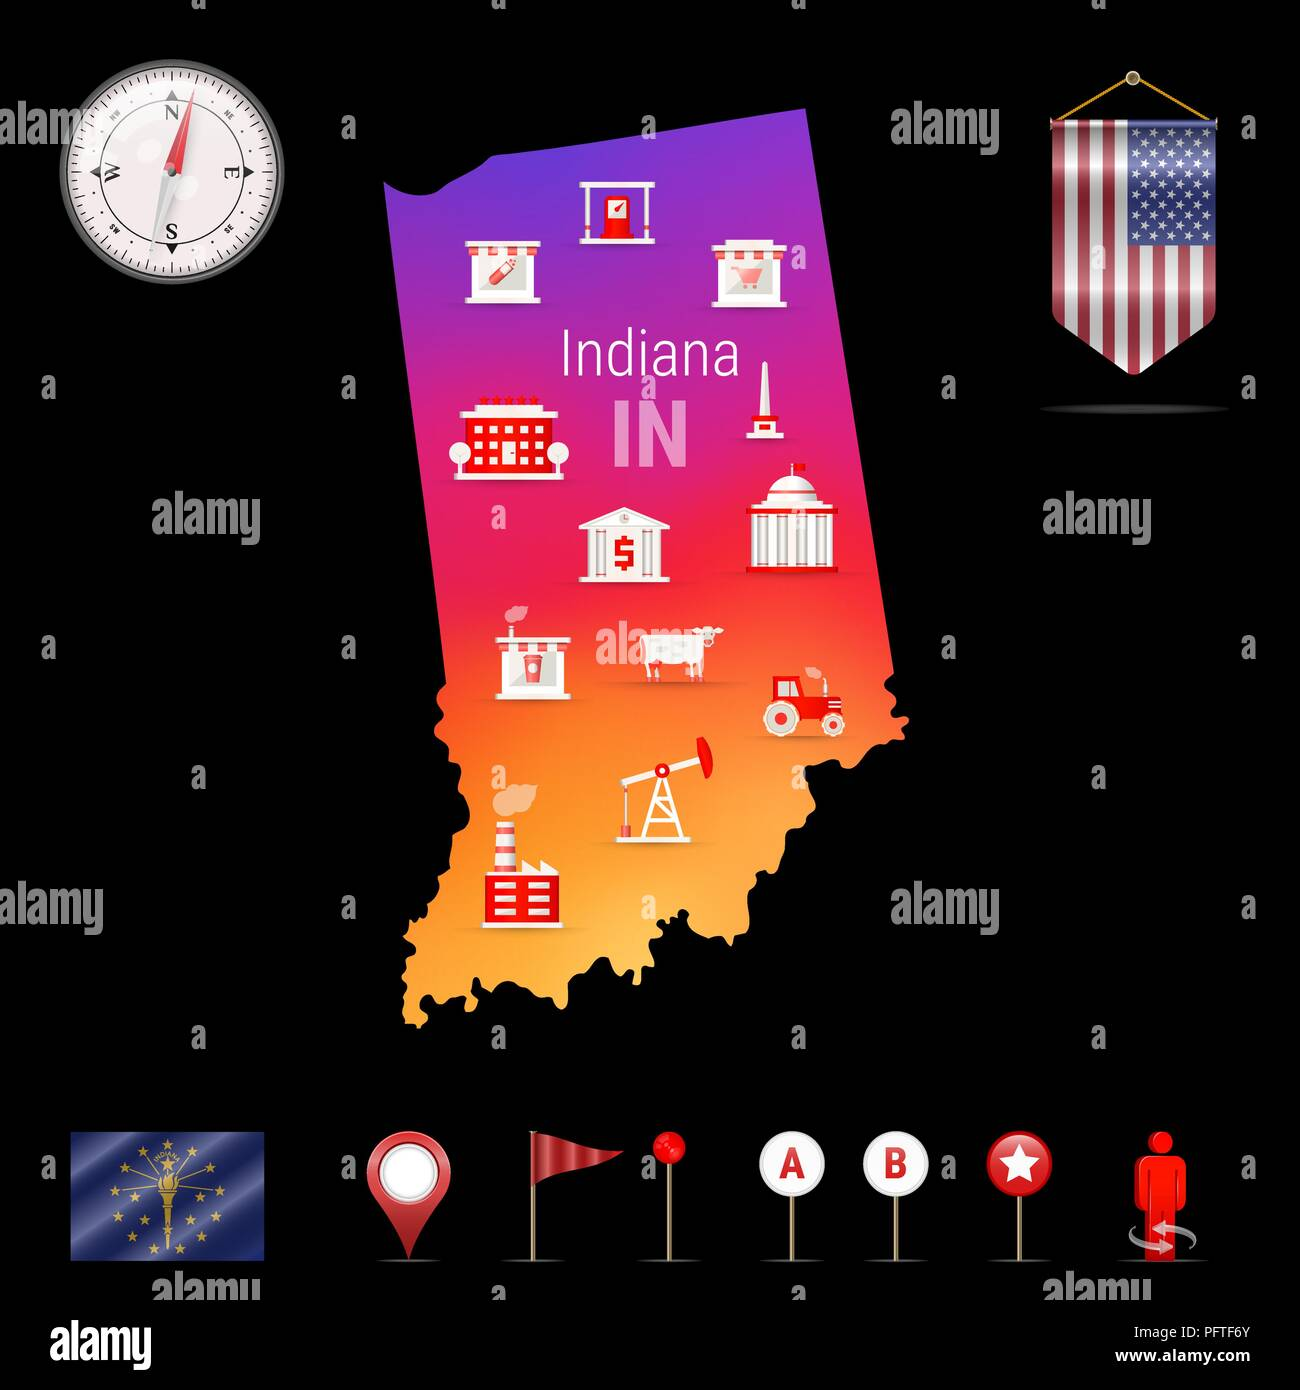 Indiana Vector Map, Night View. Compass Icon, Map Navigation Elements. Pennant Flag of the United States. Vector Flag of Indiana. Various Industries, Economic Geography Icons. - Stock Vector